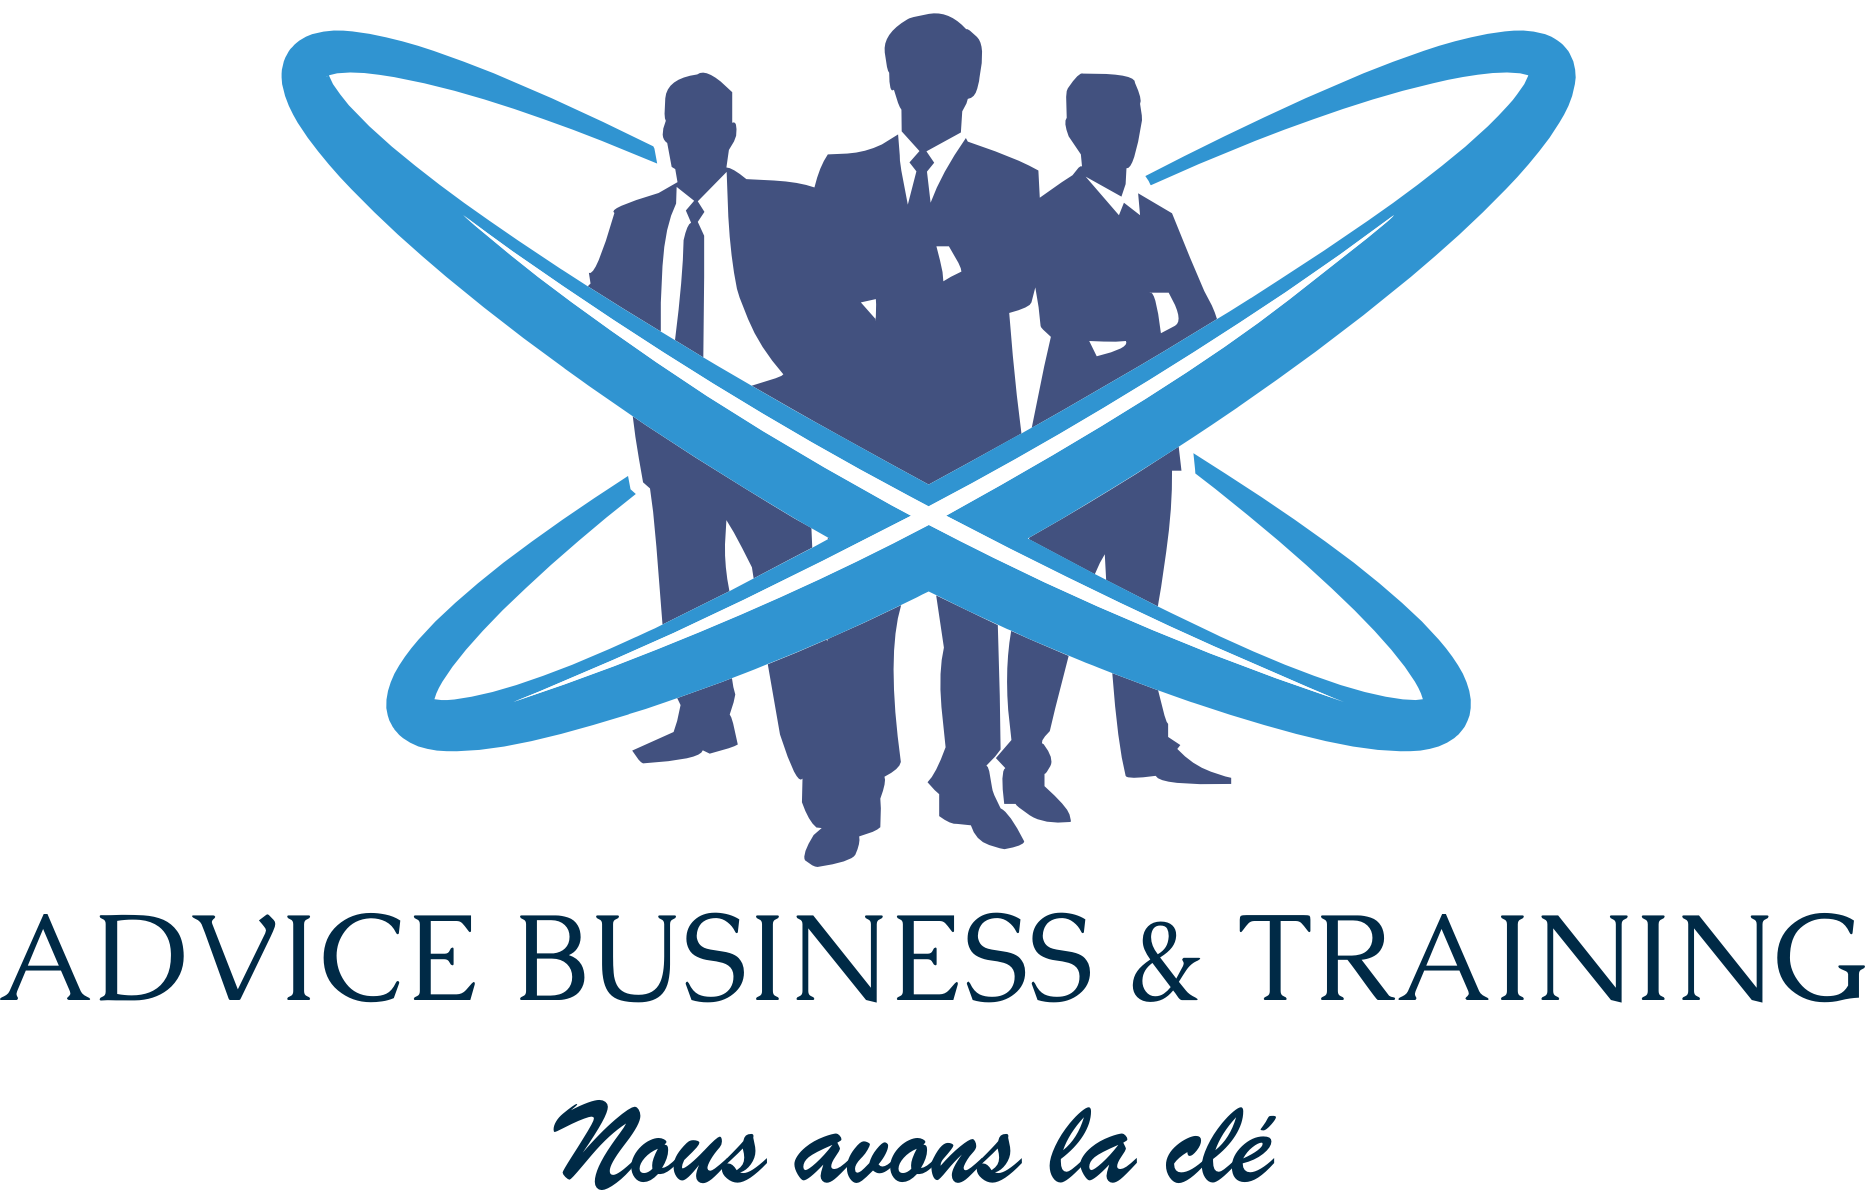 Logo Advice Business & Training